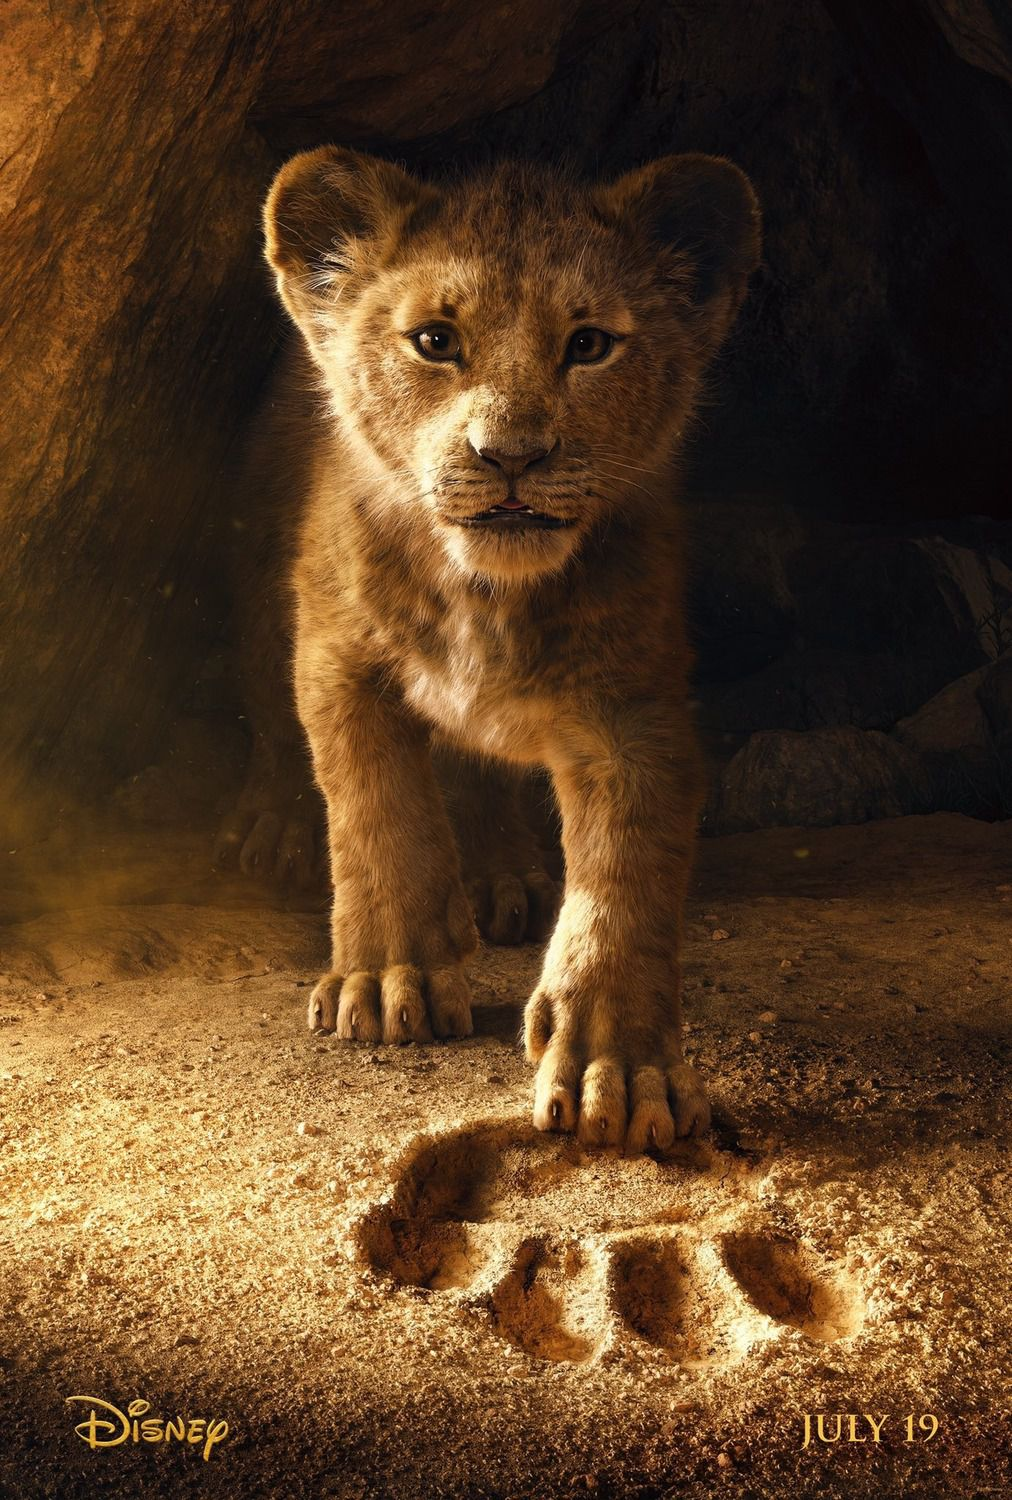 The Lion King 2019 voices Donald Glover, Beyoncé Knowles, James Earl Jones, Chiwetel Ejiofor Disney poster